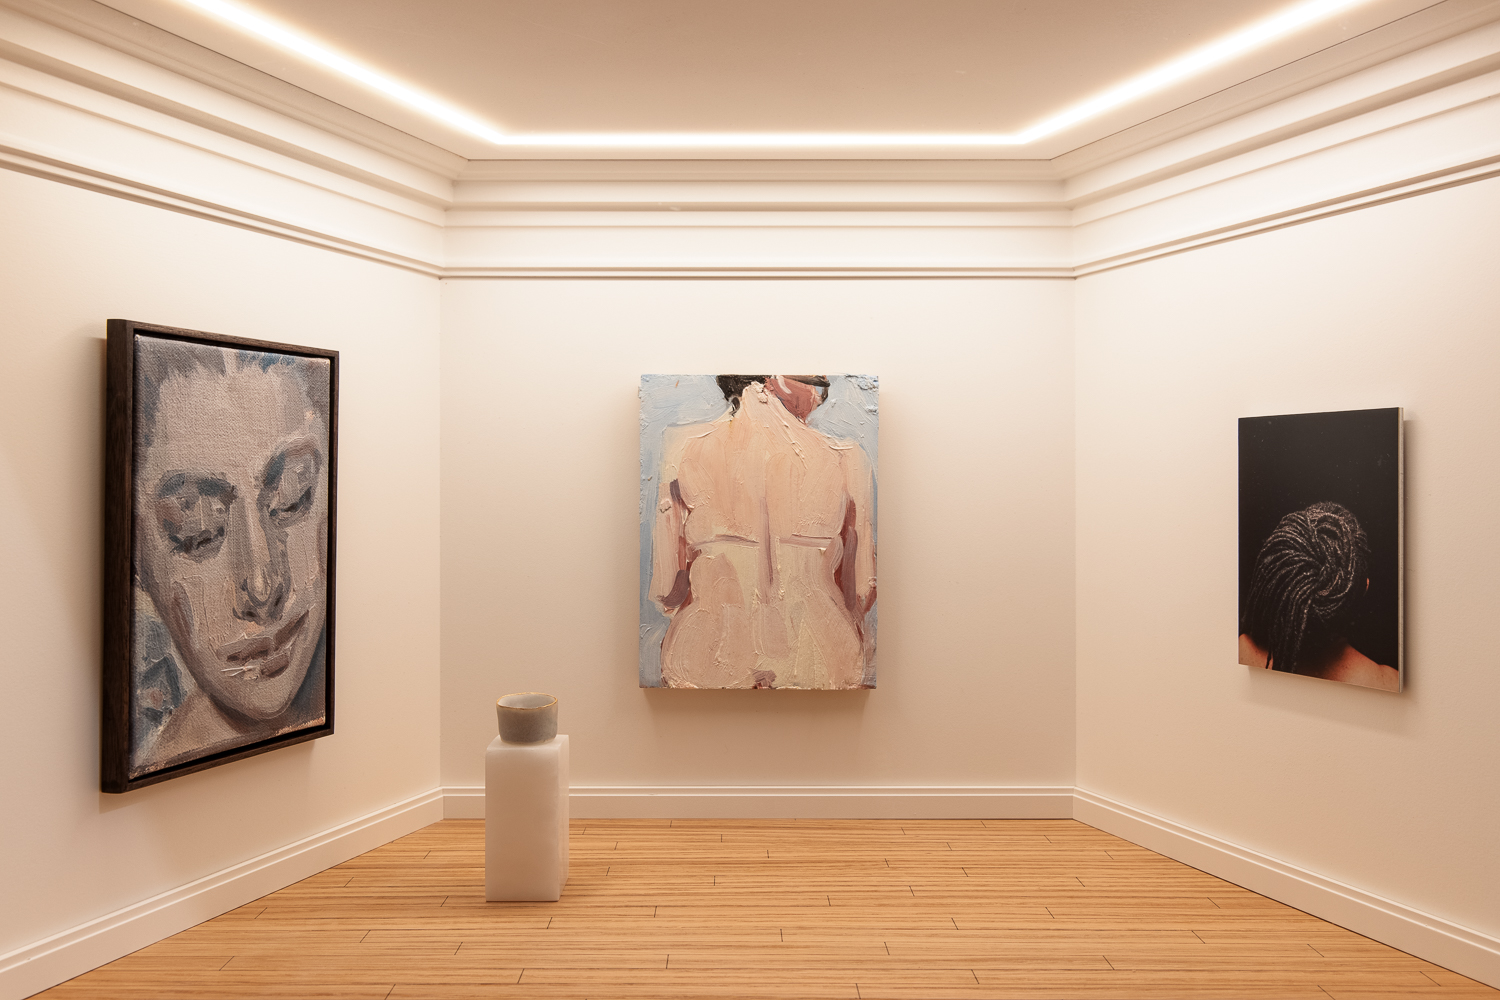 Four works of art in a gallery with white walls and wooden flooring. On the left wall is a close up portrait of a woman's face painted in grey and blue tones. On the back wall in the centre is a painting of a woman's bare back. On the right wall is a photograph of the back of a woman's head, showing her intricate braided hair. On a plinth towards the left side is a ceramic pot, edged with gold.